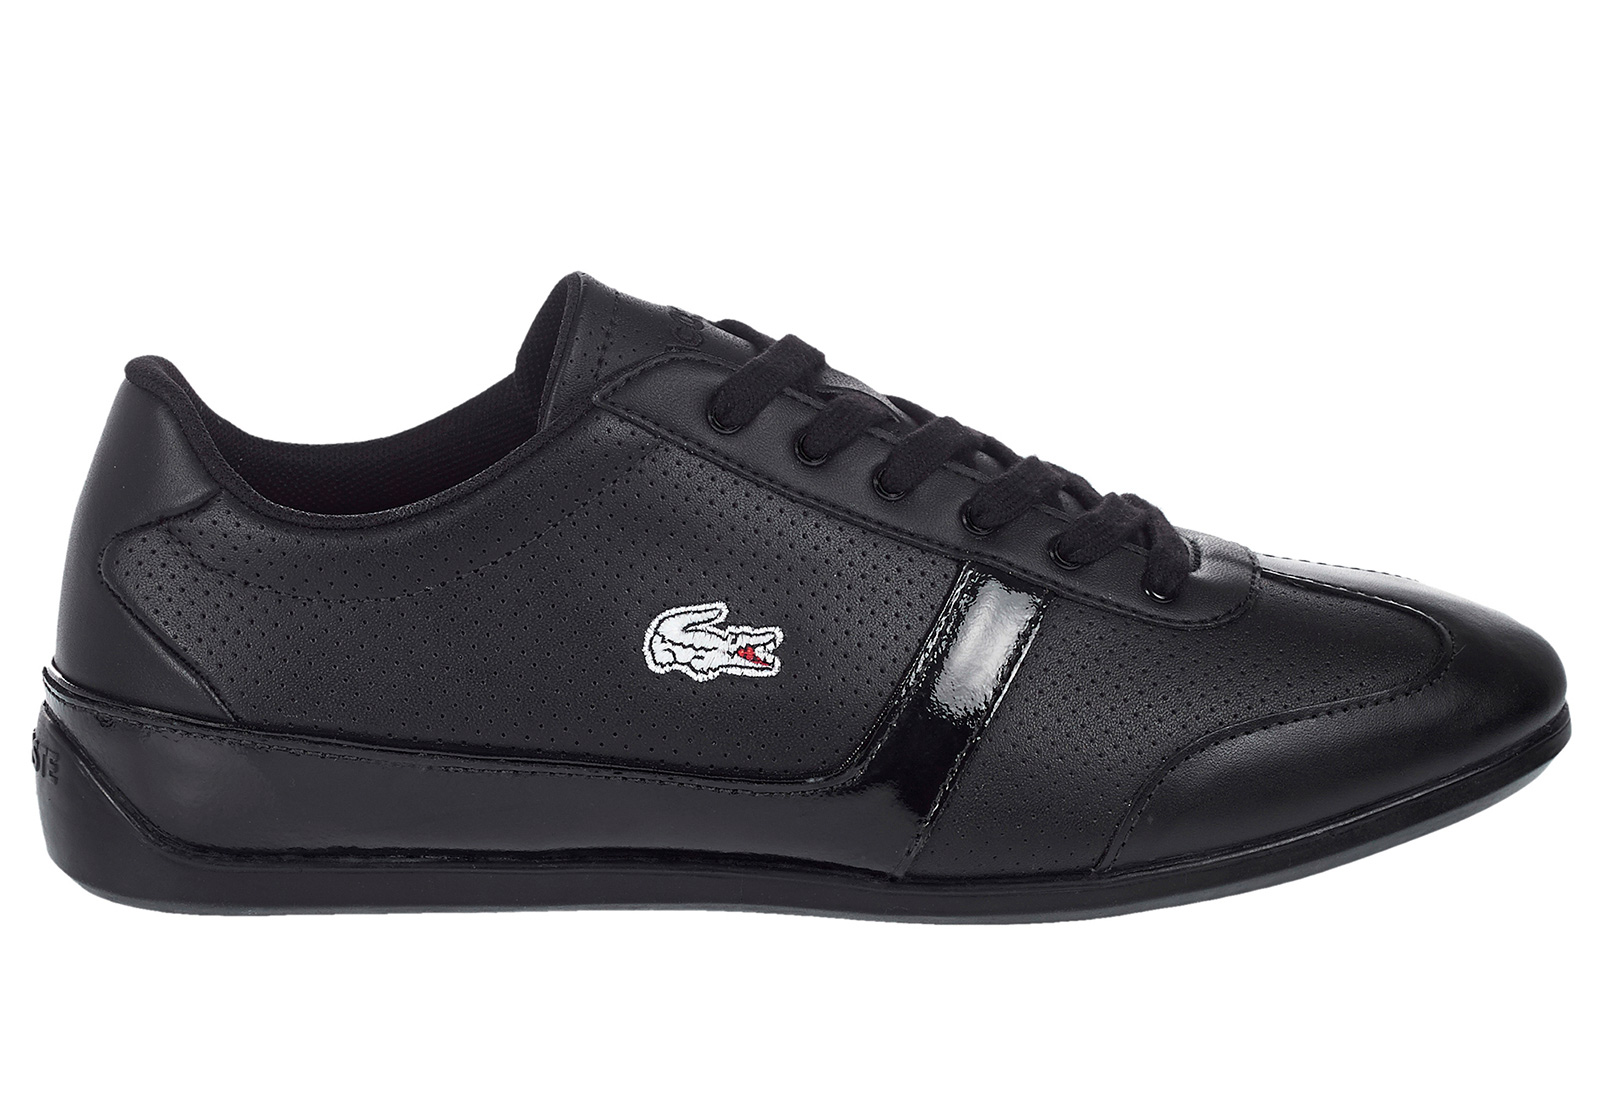 lacoste shoes missano sport gsk zx spw111102h